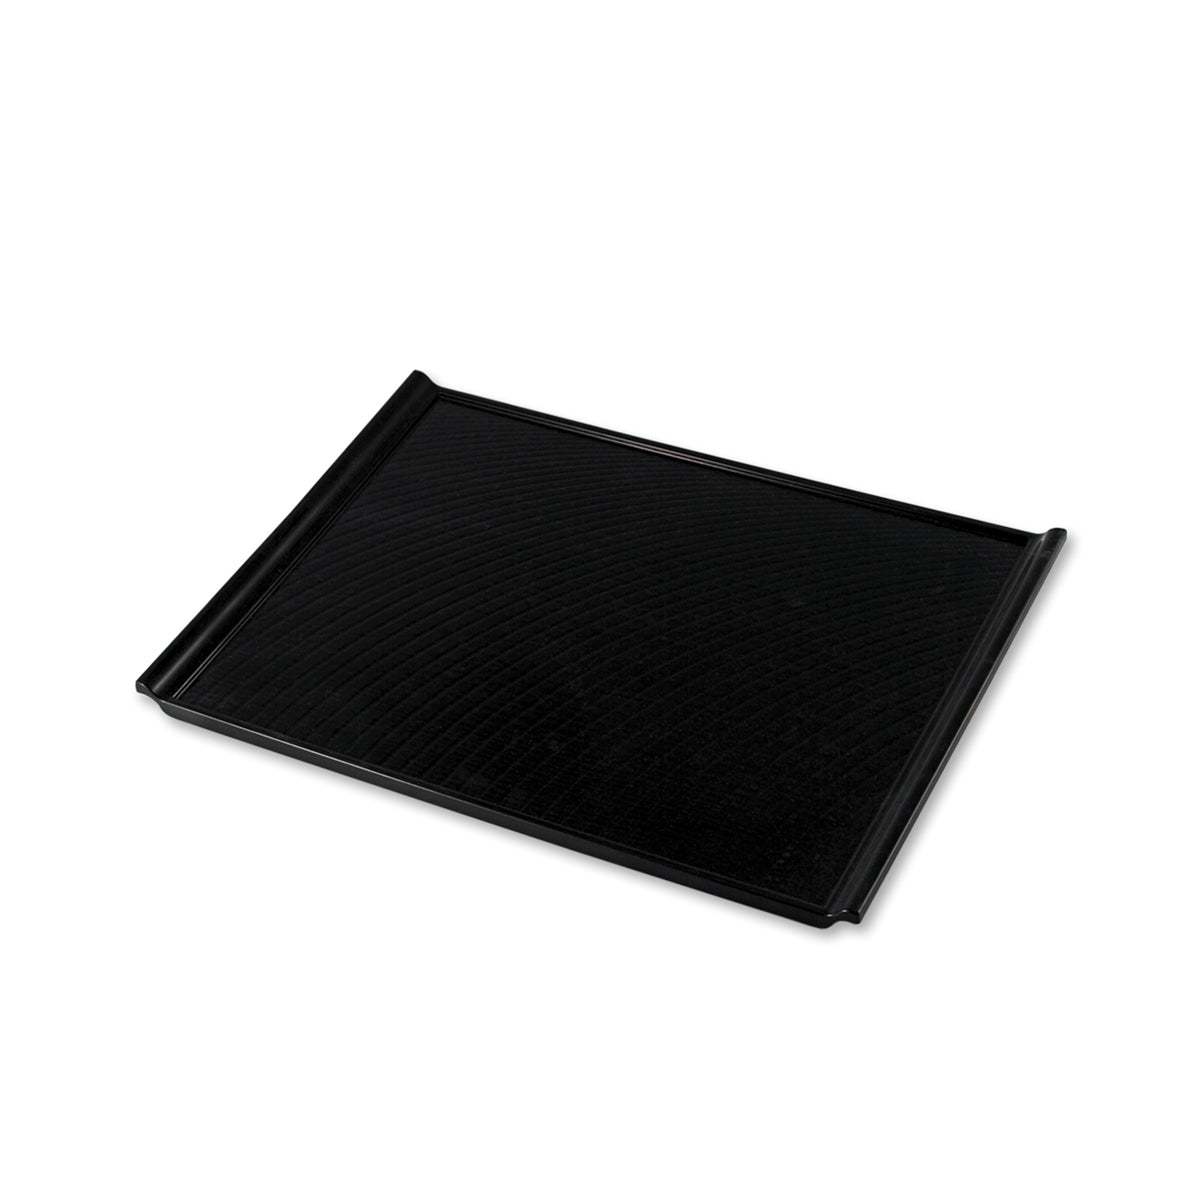 "Non-slip Black Rectangular Serving Tray with Handles 15.55"" x 10.87"""